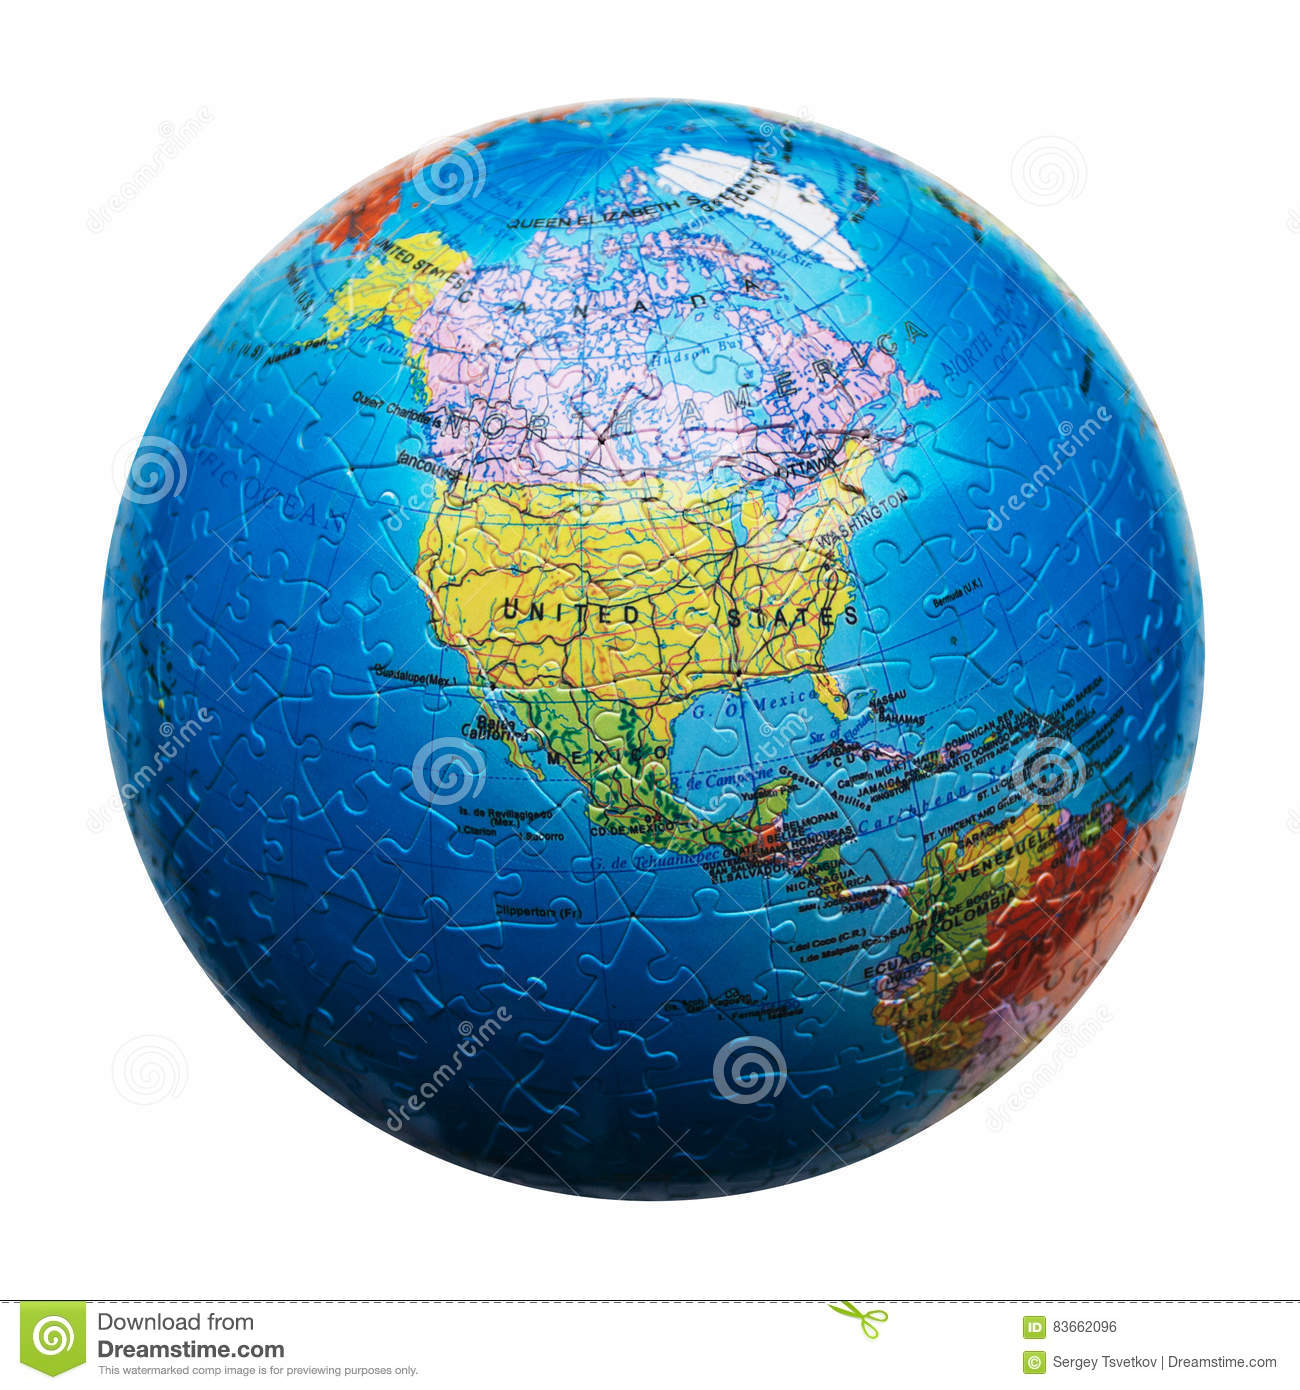 Us Map Globe.Globe Puzzle Isolated Map Of North America United States Canada